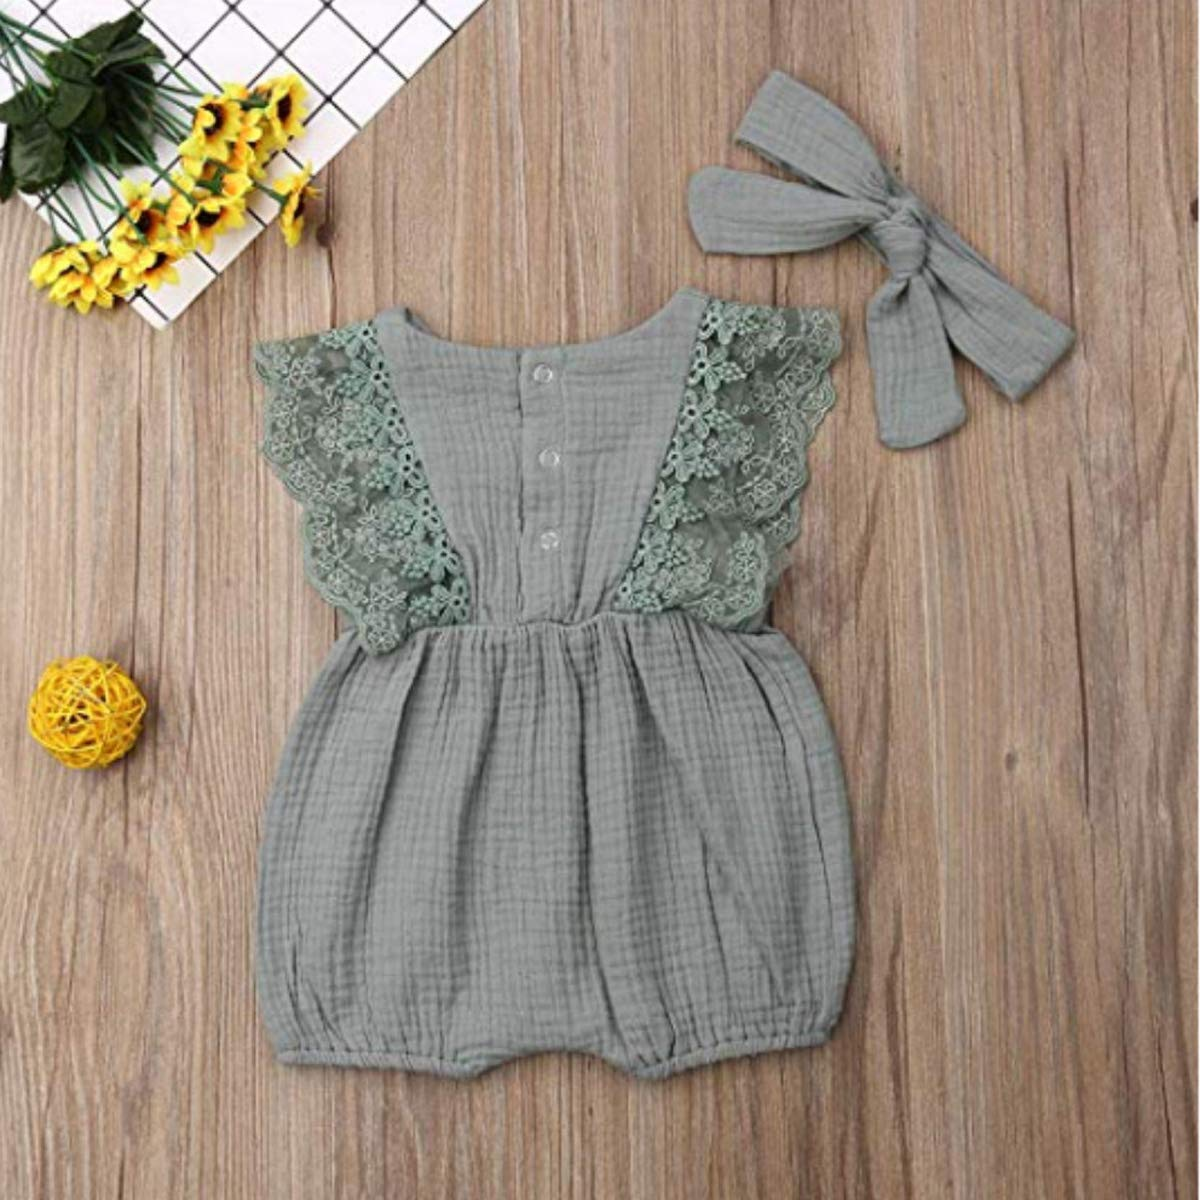 Baby Girls Ruffled Lace Romper Sleeveless Bodysuit Cotton Linen Jumpsuit Clothes with Headband